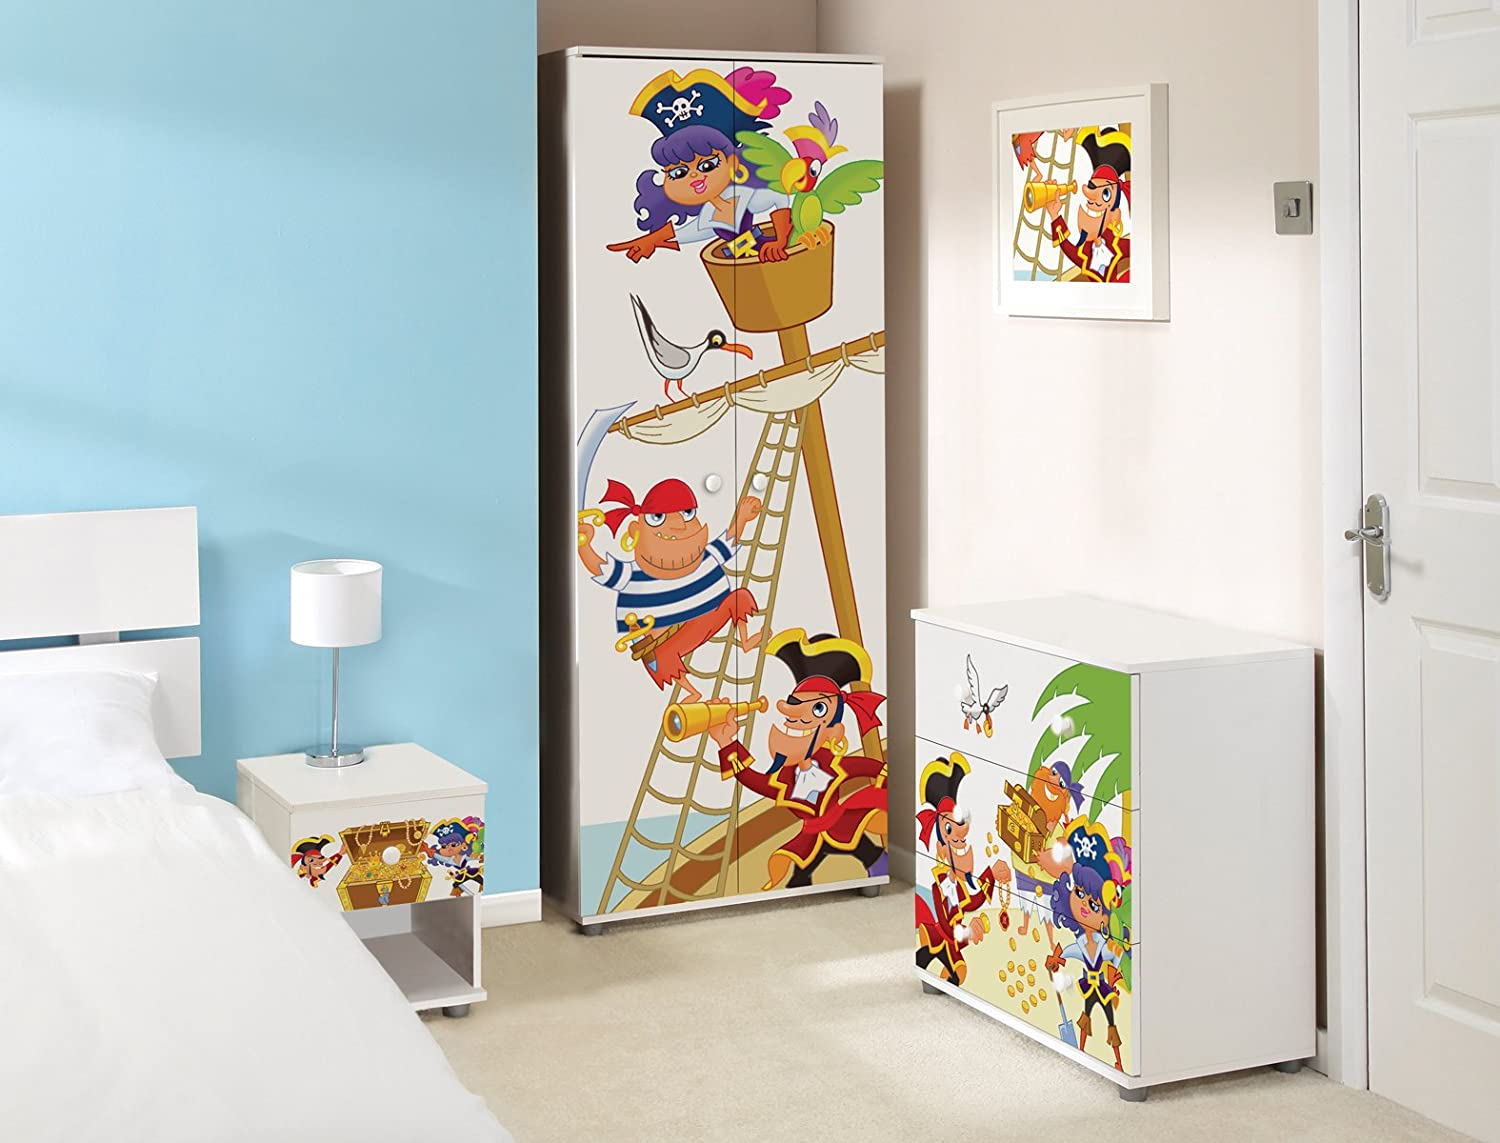 Pirate Design Childrens/Kids White Bedroom Furniture Sets: Amazon ...